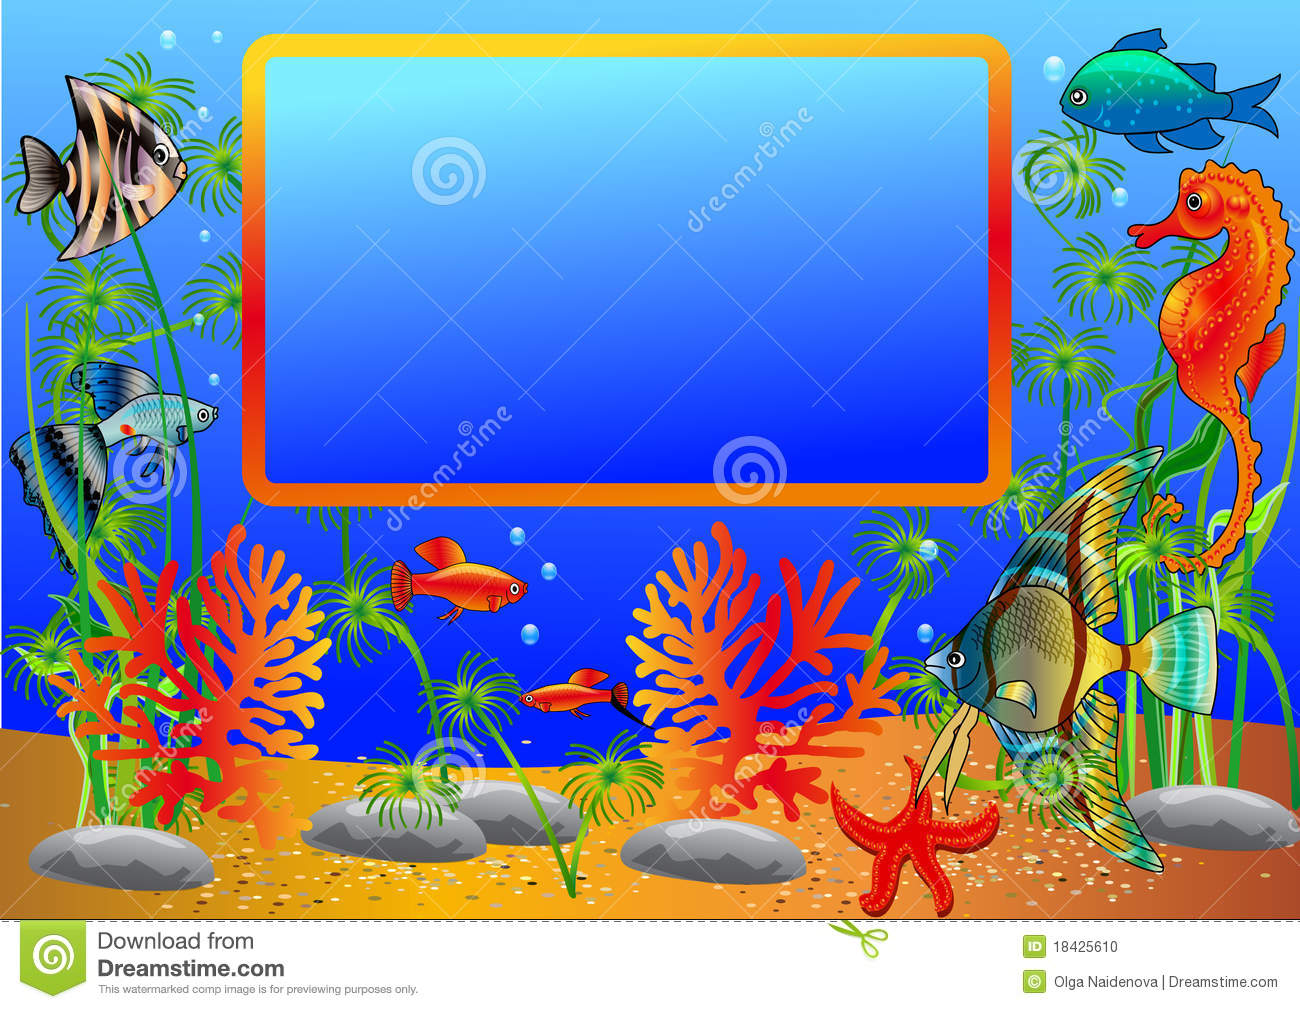 The coral reef frame border illustration for the children stock - Illustration Frame With Undersea Fish Stock Photo Image